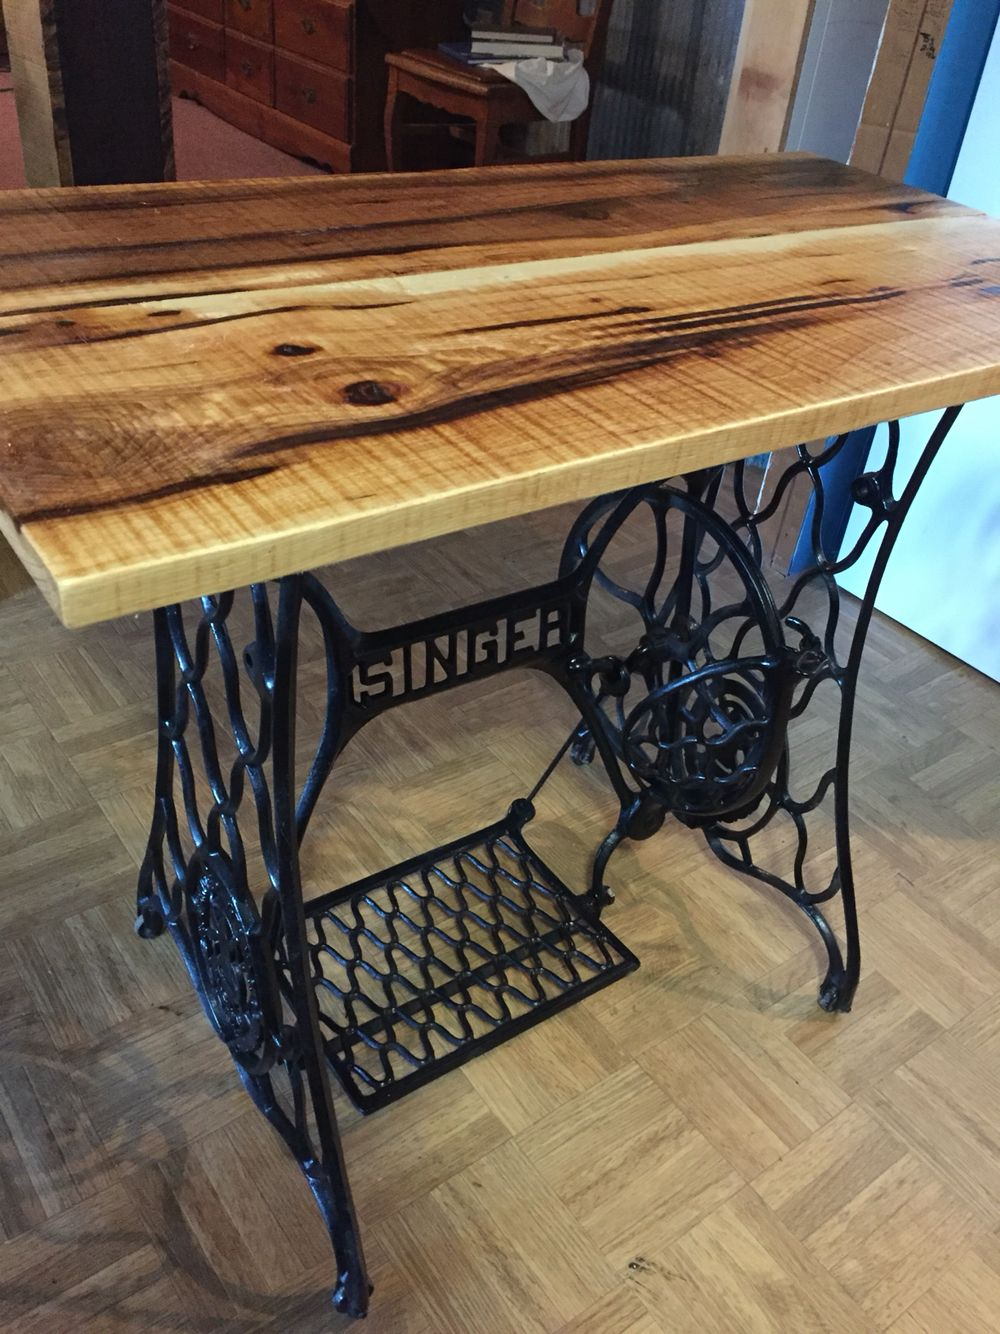 Beau End Table Made From Antique Singer Sewing Machine With Rough Sawed Lumber  Used As Top.